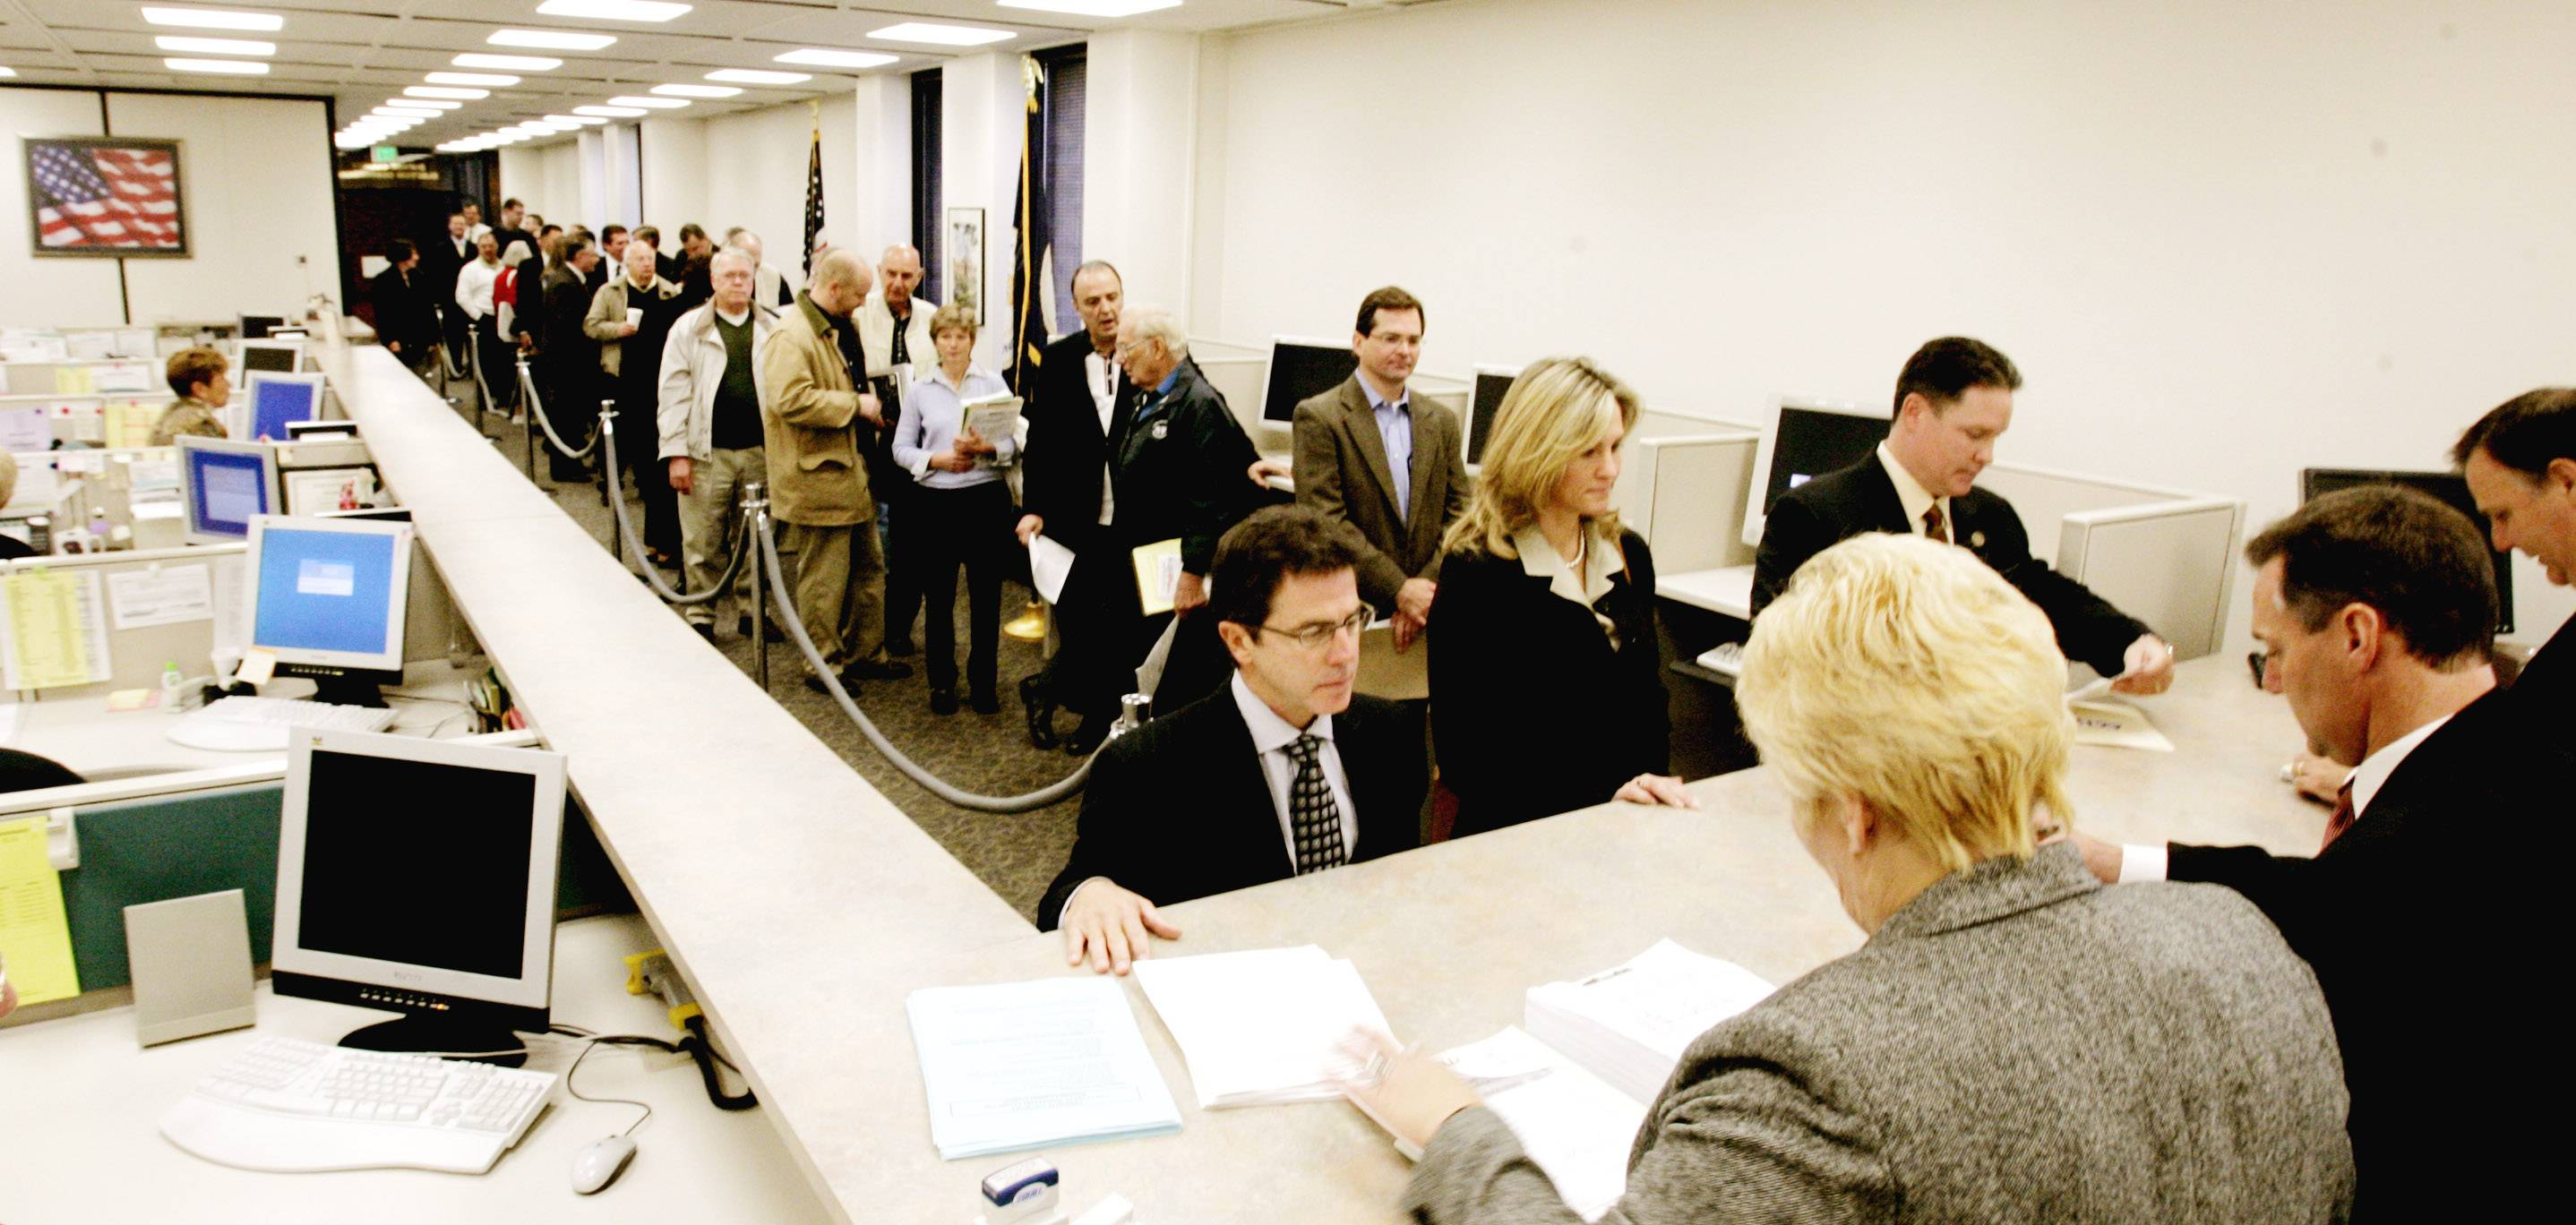 The long lines that historically form at county clerk's offices and election commissions when candidates file nomination papers for even-year elections are expected to happen on Monday morning when school board members file at those locations for the first time.